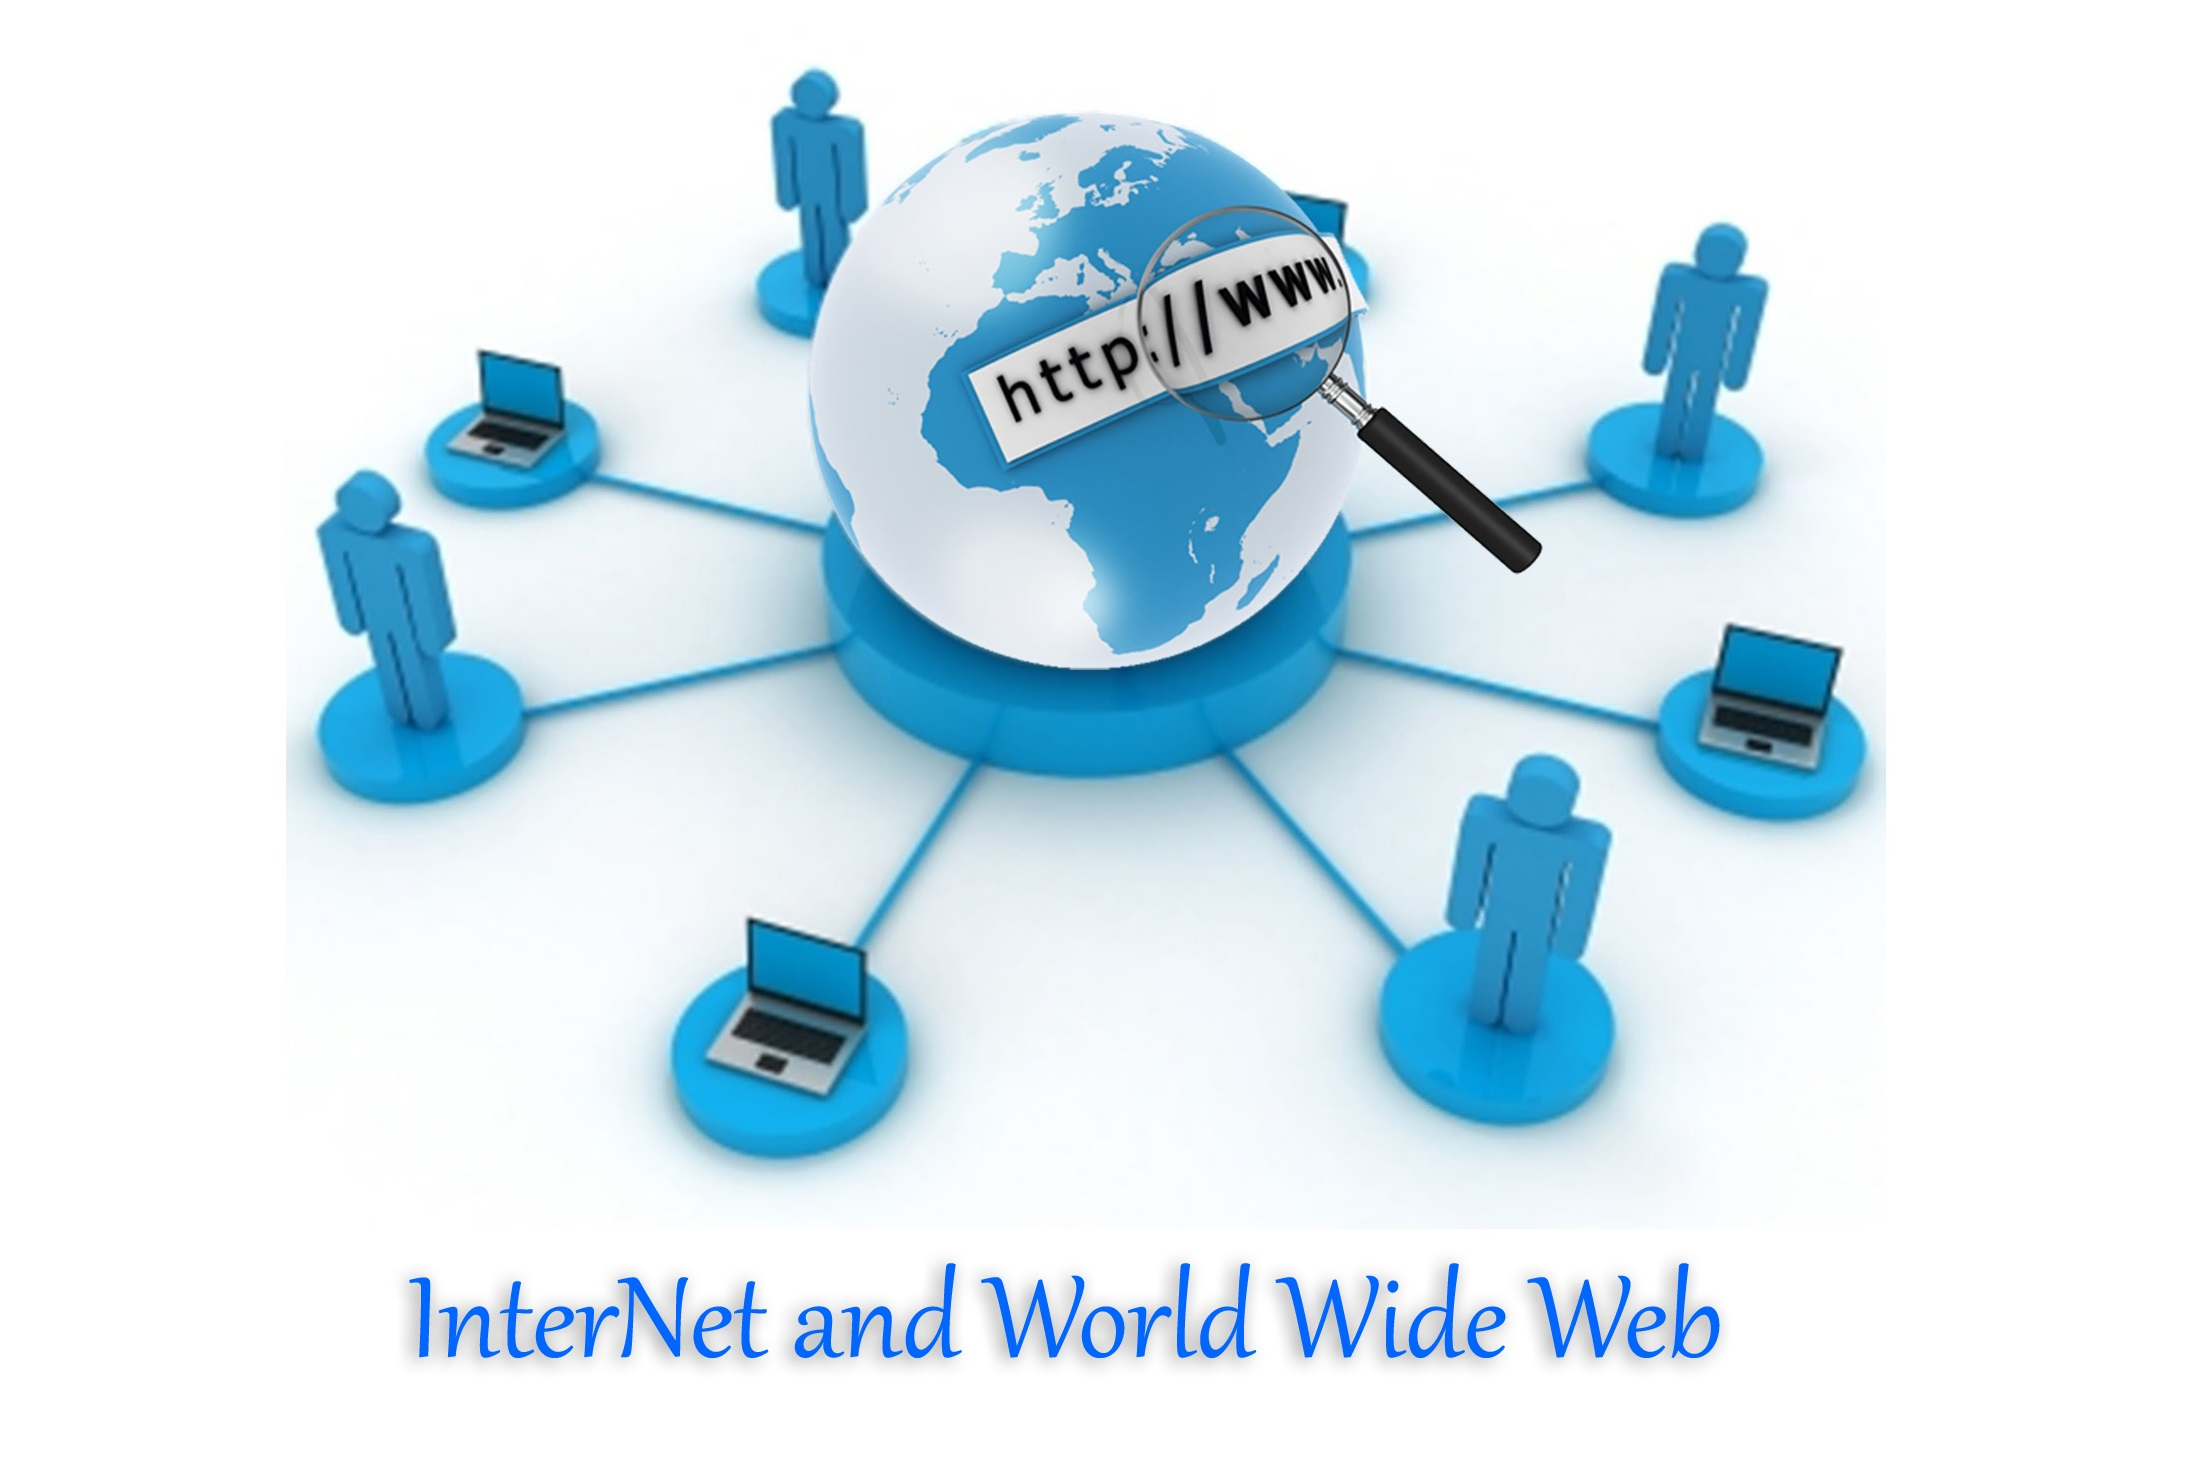 InterNet-and-World-Wide-Web